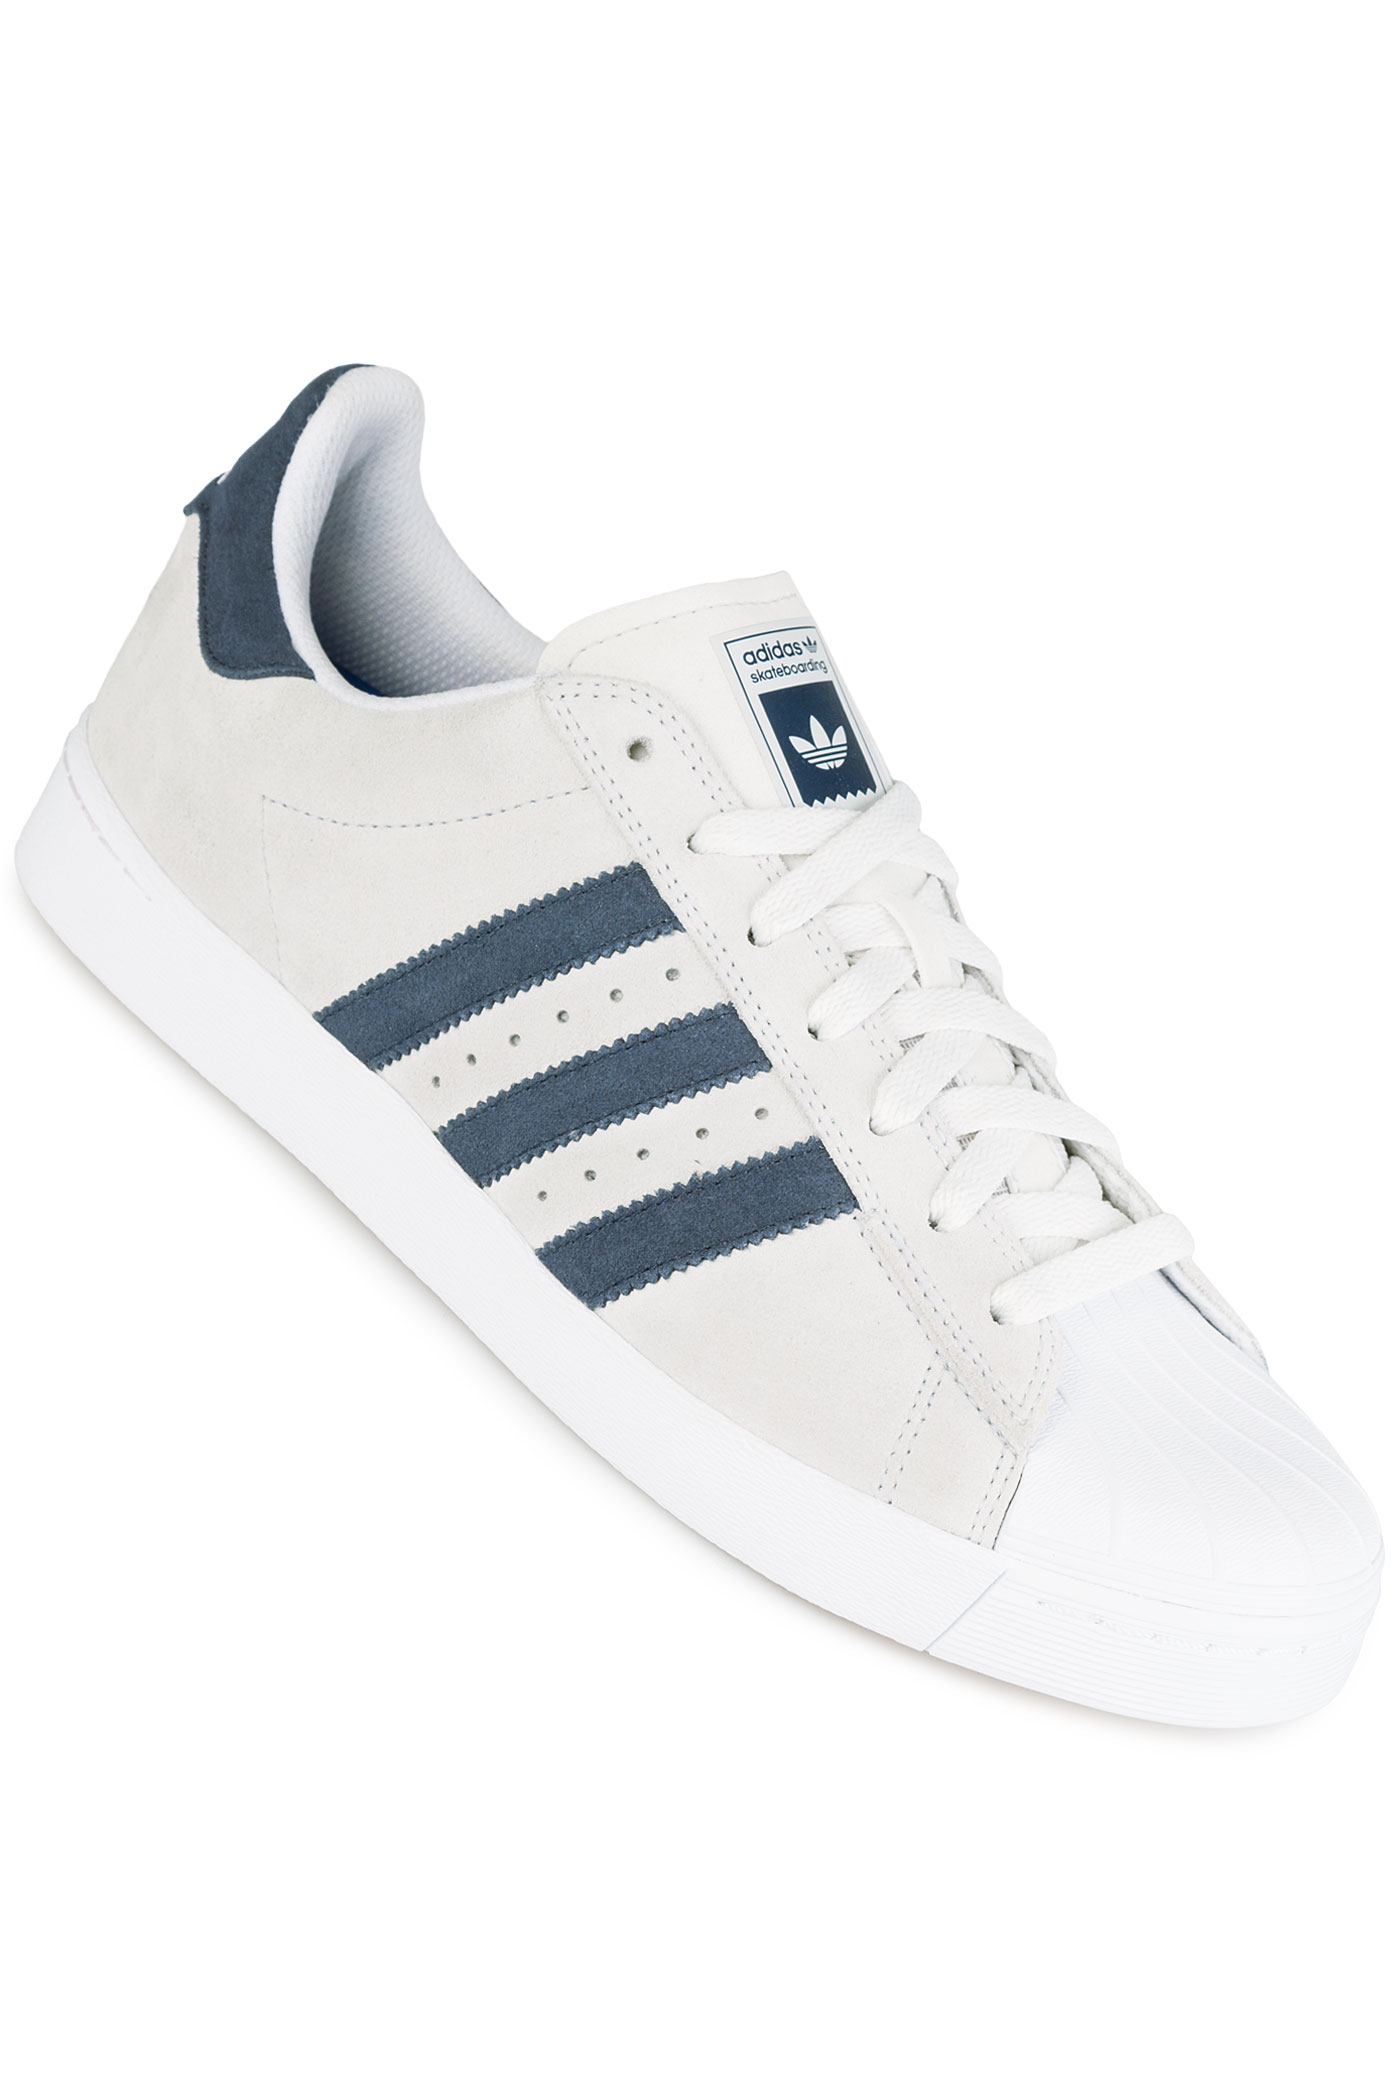 adidas superstar white navy